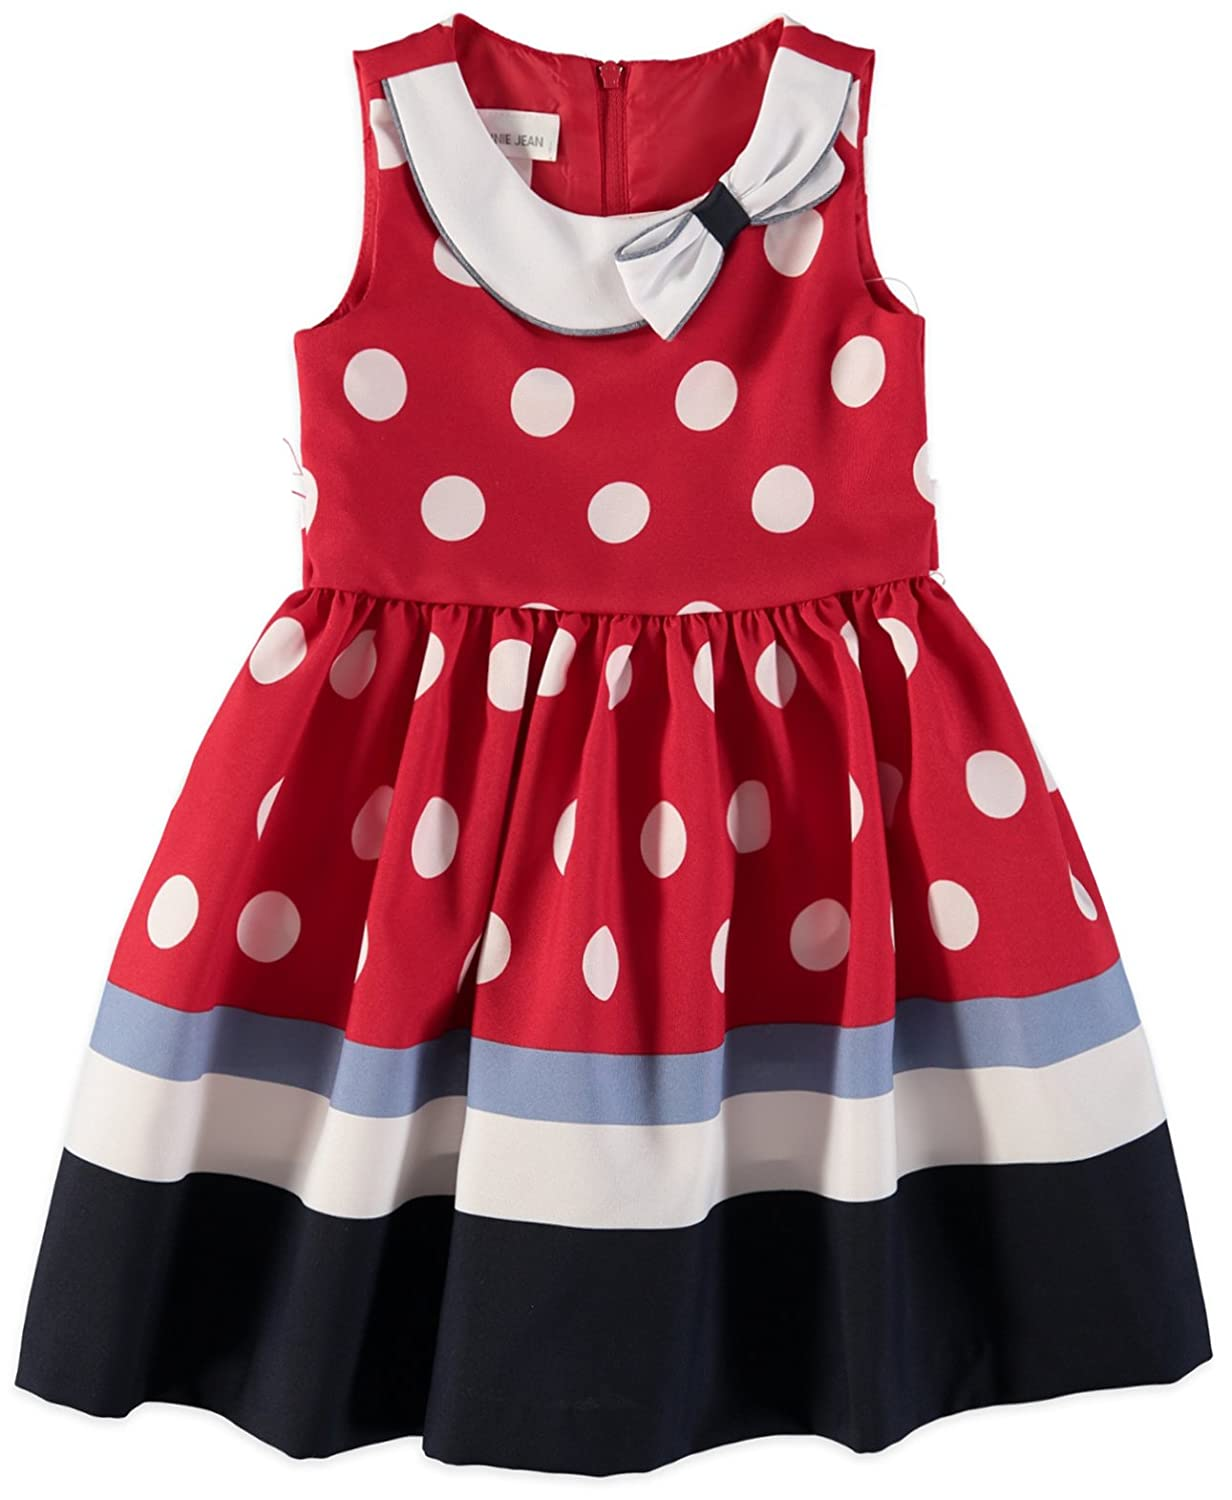 2515b275ac62 Short-sleeved navy nautical dress with sailor collar, white decorative  buttons and white bow on the front, soft pleats at empire waist and white  border ...